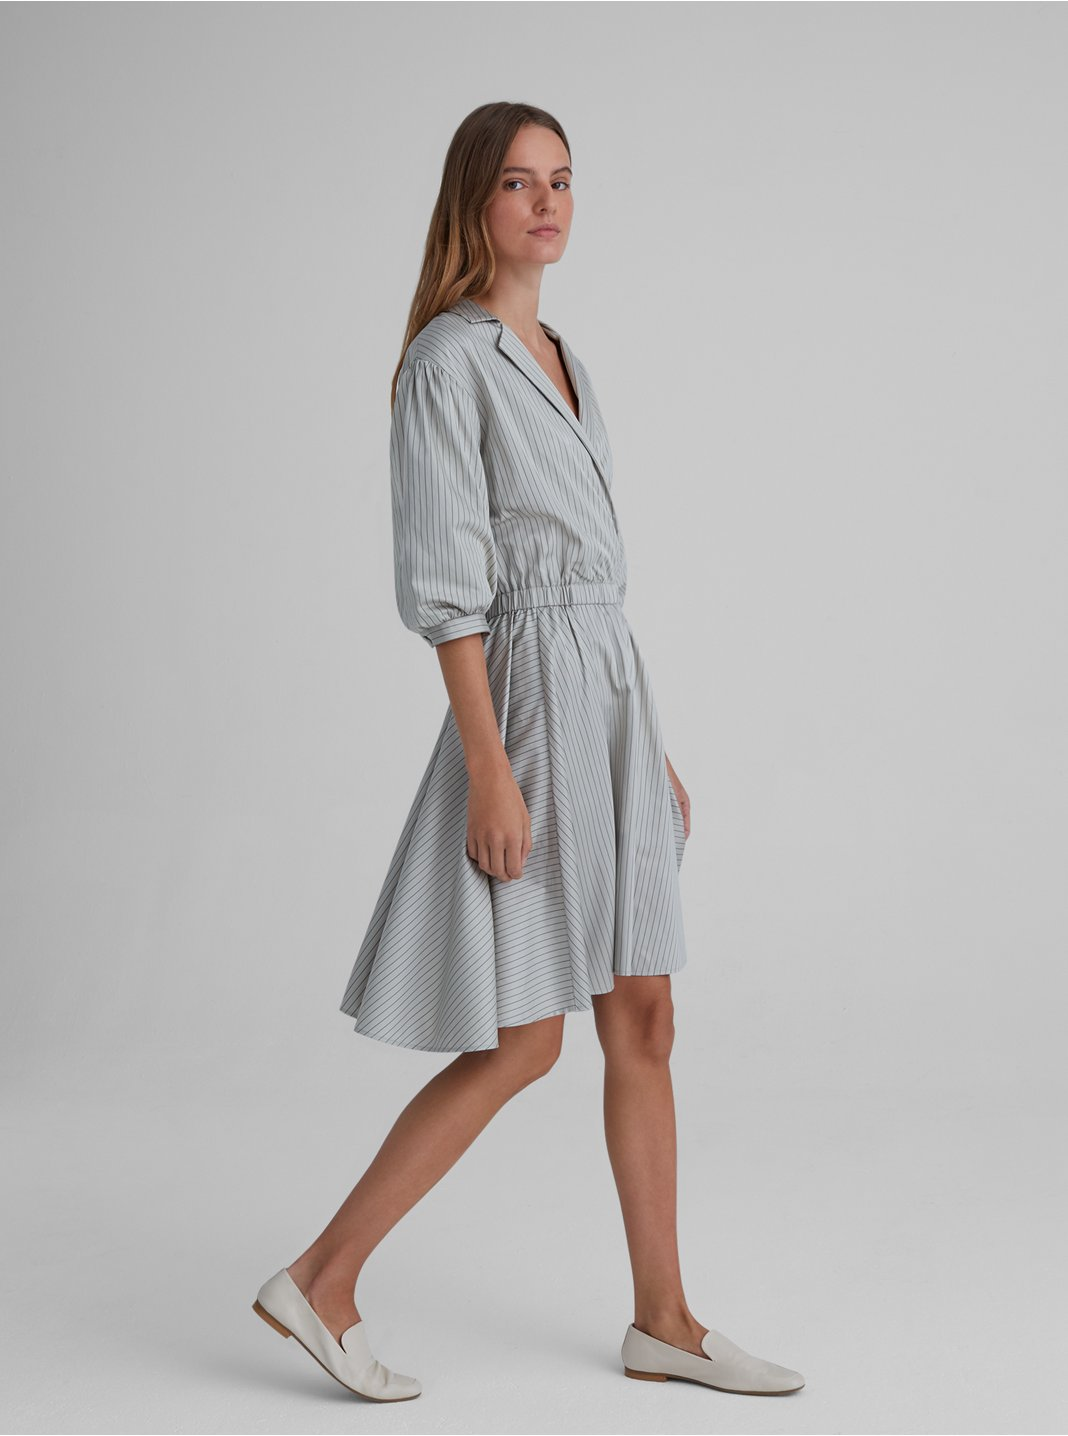 Collared A-Line Dress